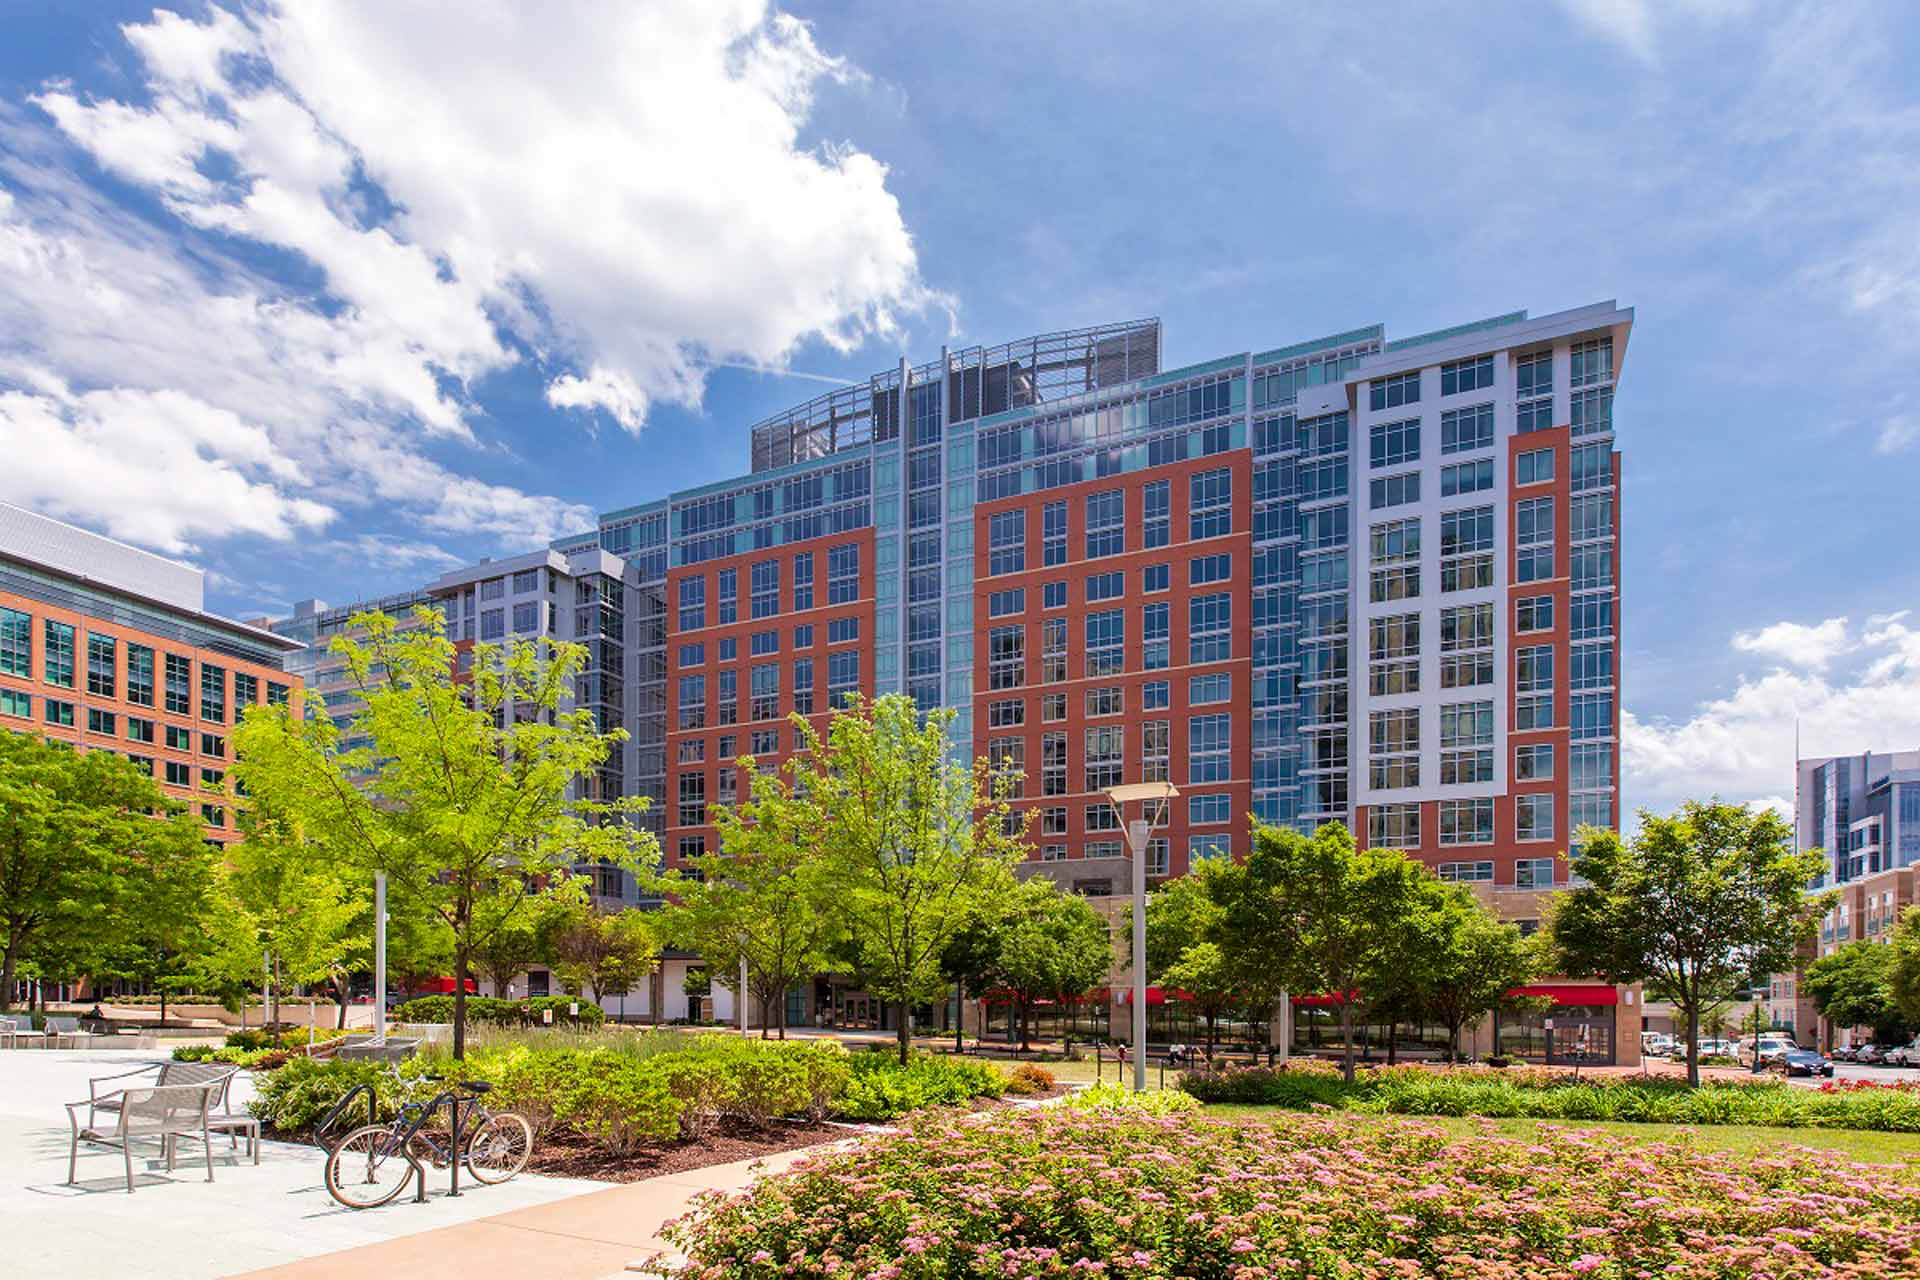 View of The Avant building from Reston Town Square Park greenery